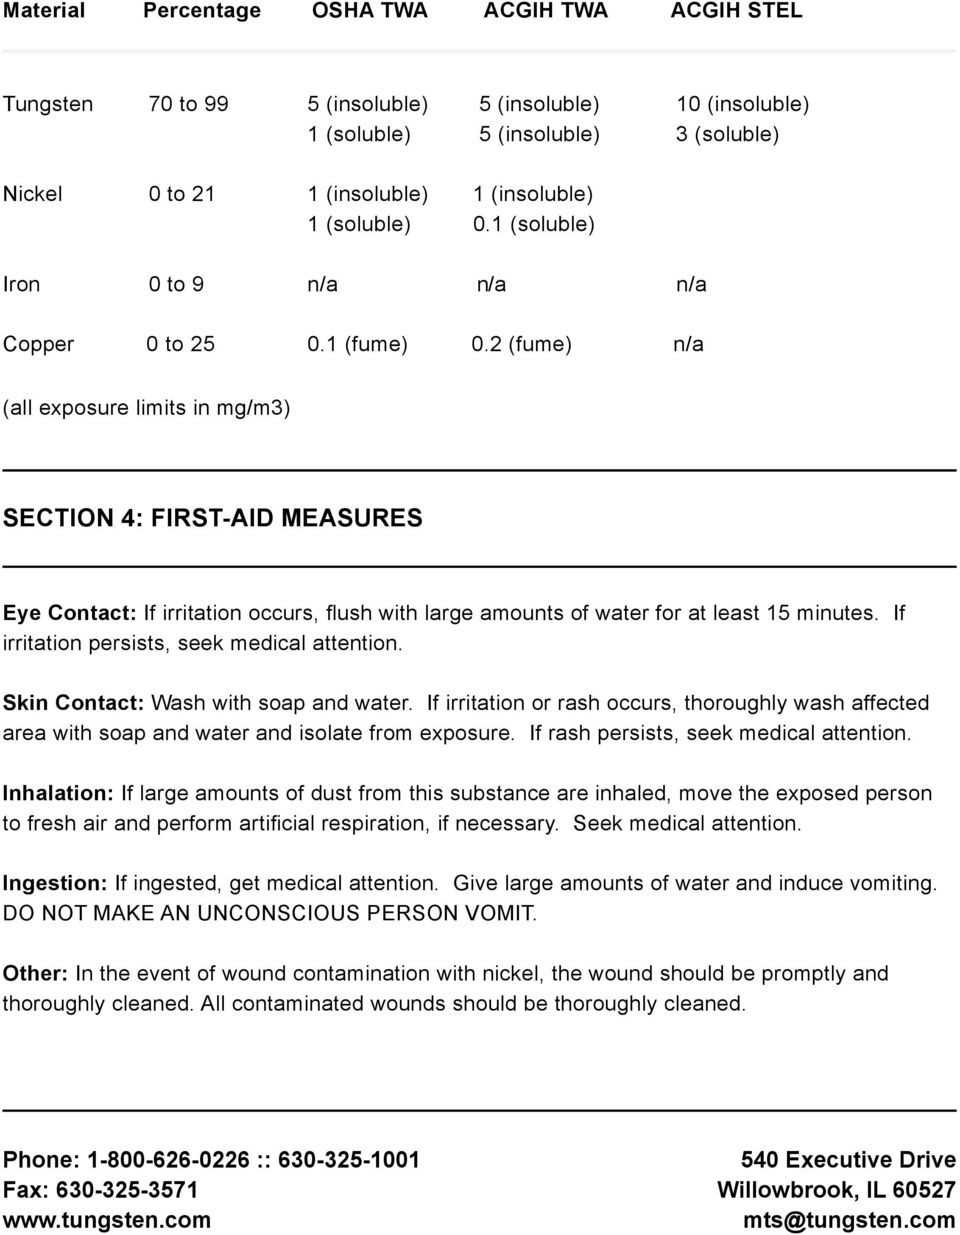 2 (fume) (all exposure limits in mg/m3) SECTION 4: FIRST-AID MEASURES Eye Contact: If irritation occurs, flush with large amounts of water for at least 15 minutes.